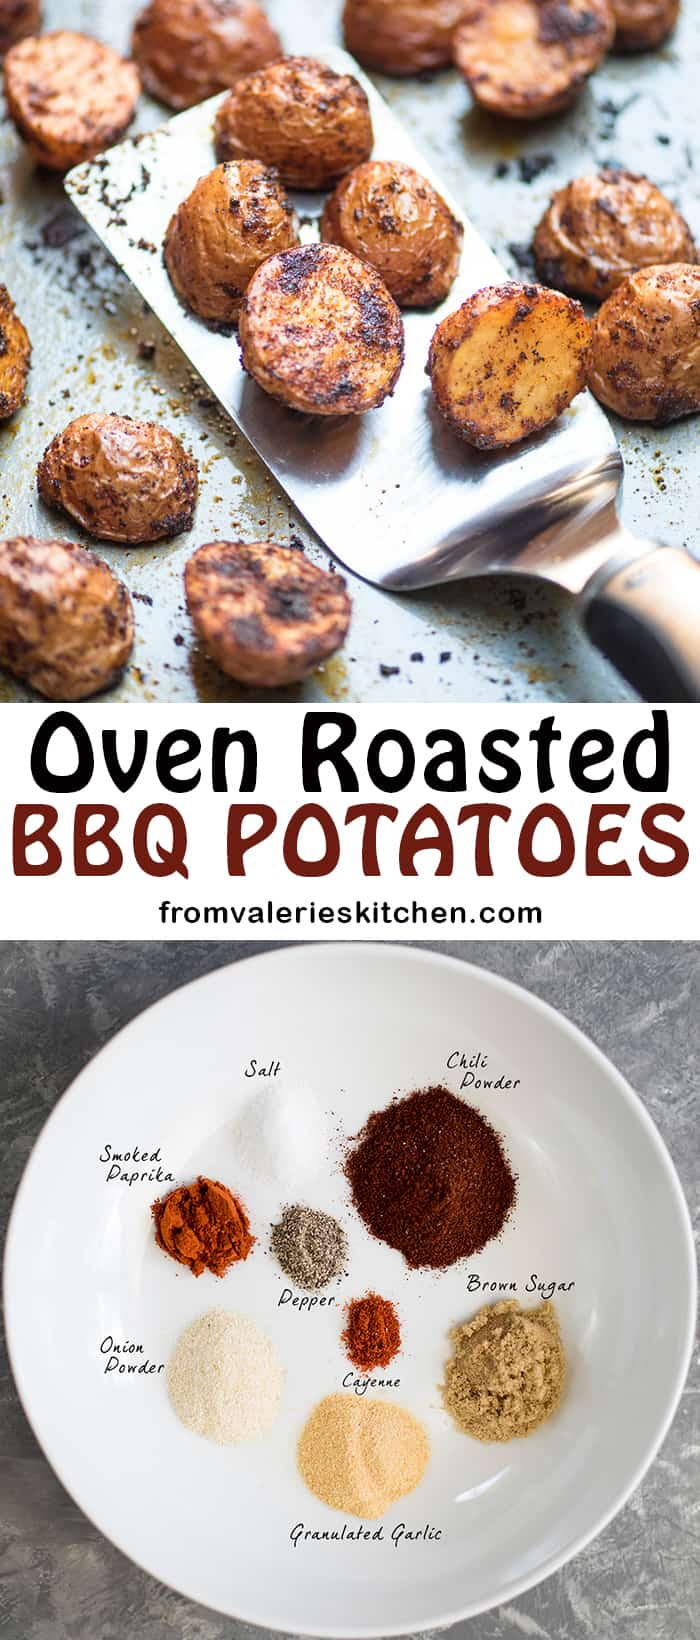 A two image vertical collage of Oven Roasted BBQ Potatoes with text overlay.